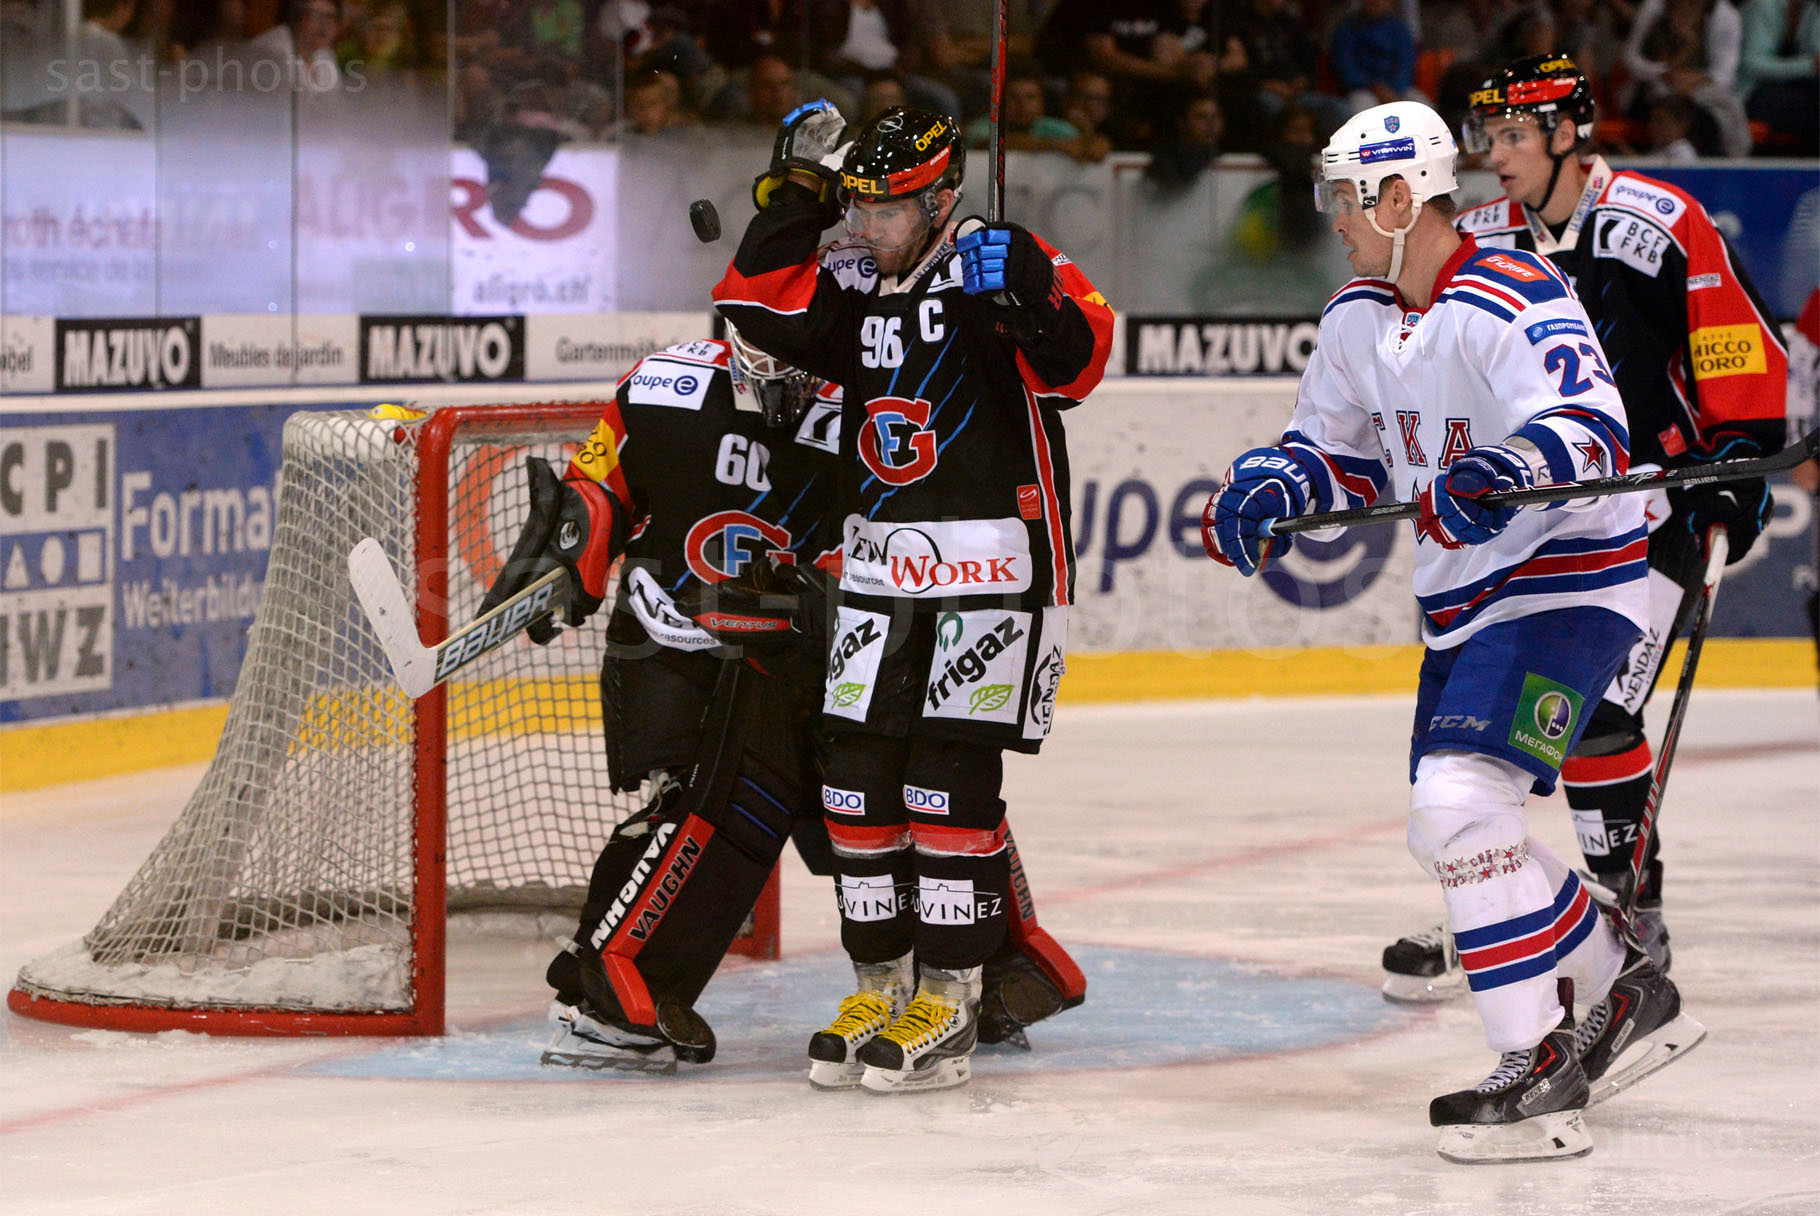 v.l.n.r. Christian Dube (Fribourg) Alexei Ponikarovsky (St. Petersburg) Maxime Montandon (Fribourg)